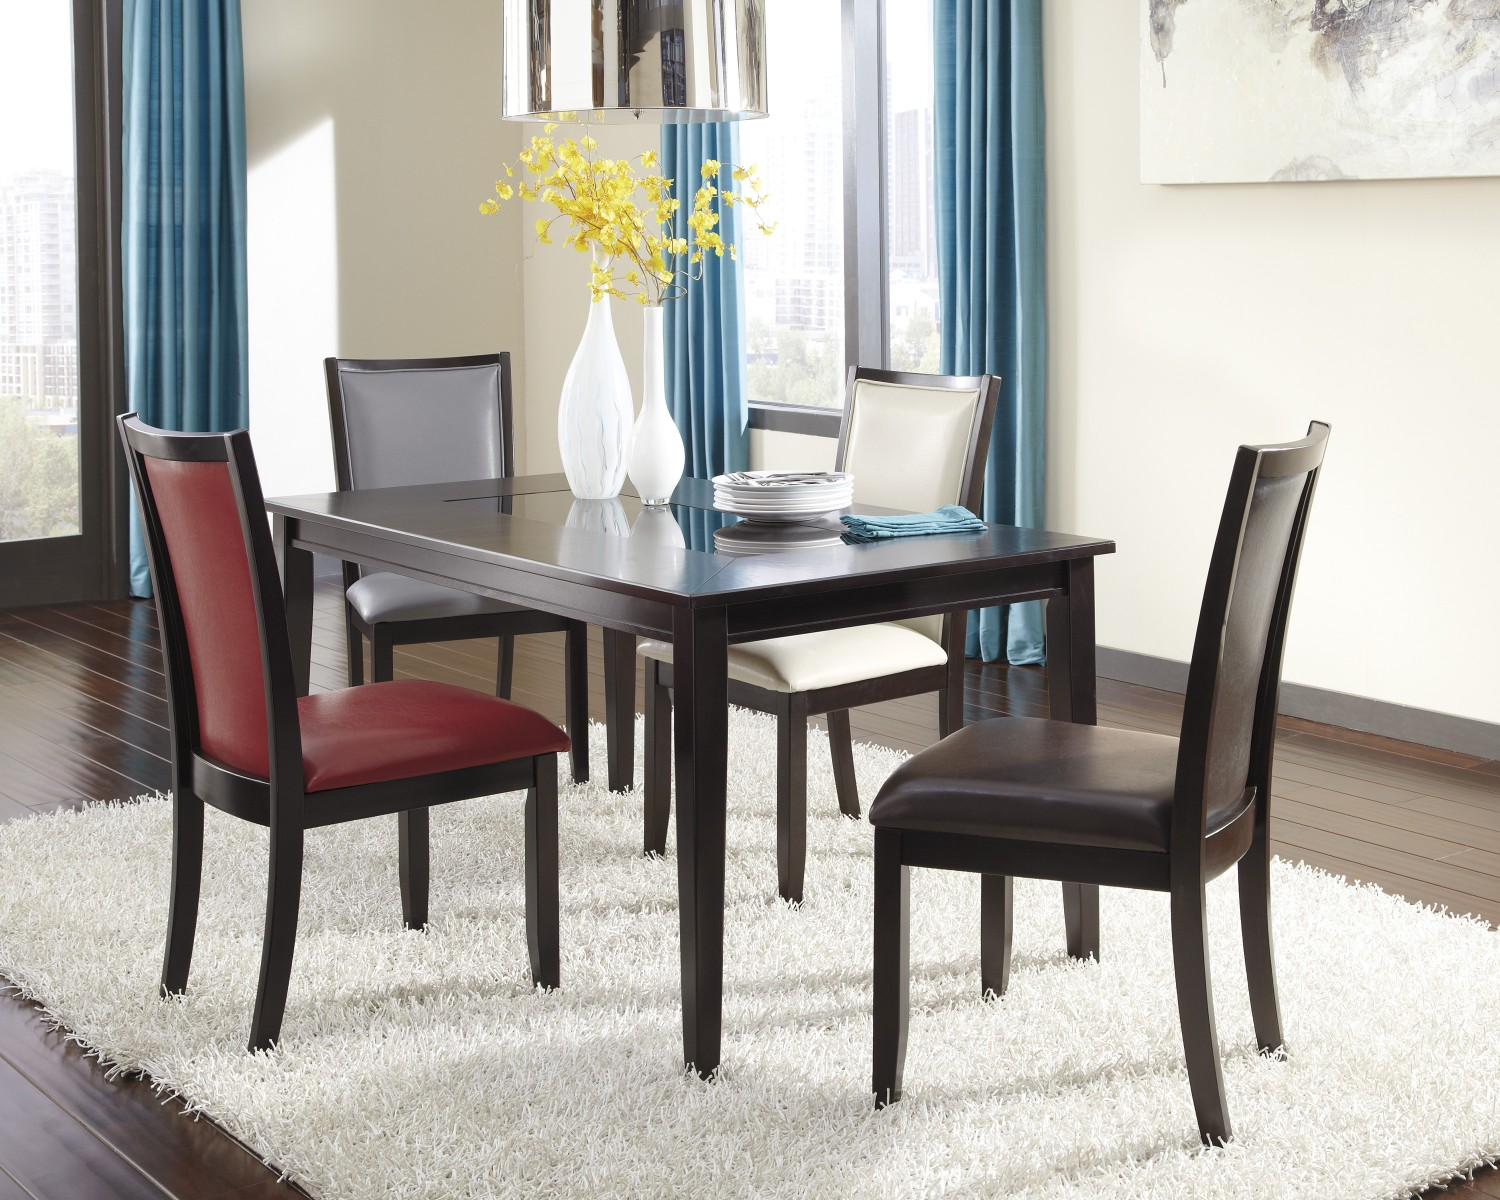 ashley furniture dining room chairs front porch rocking black how to mix and match d550 25 02 03 04 05 color wheel